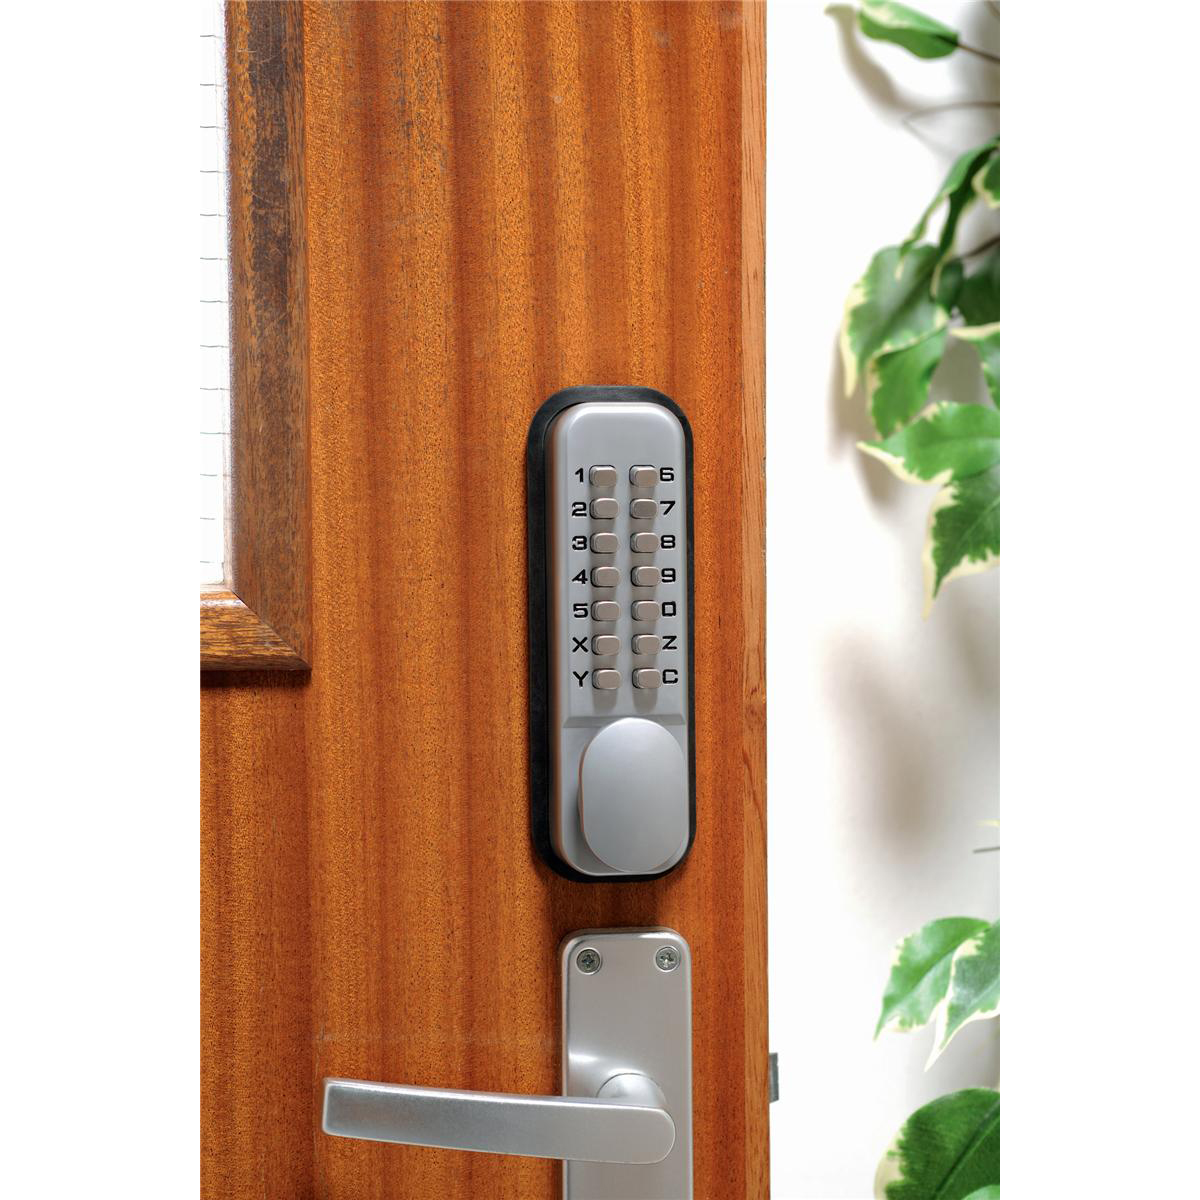 Image for Mechanical Digital Door Lock Zinc Alloy with Fail Safe and 8000 Possible Combinations Ref DXLOCKITHB/C